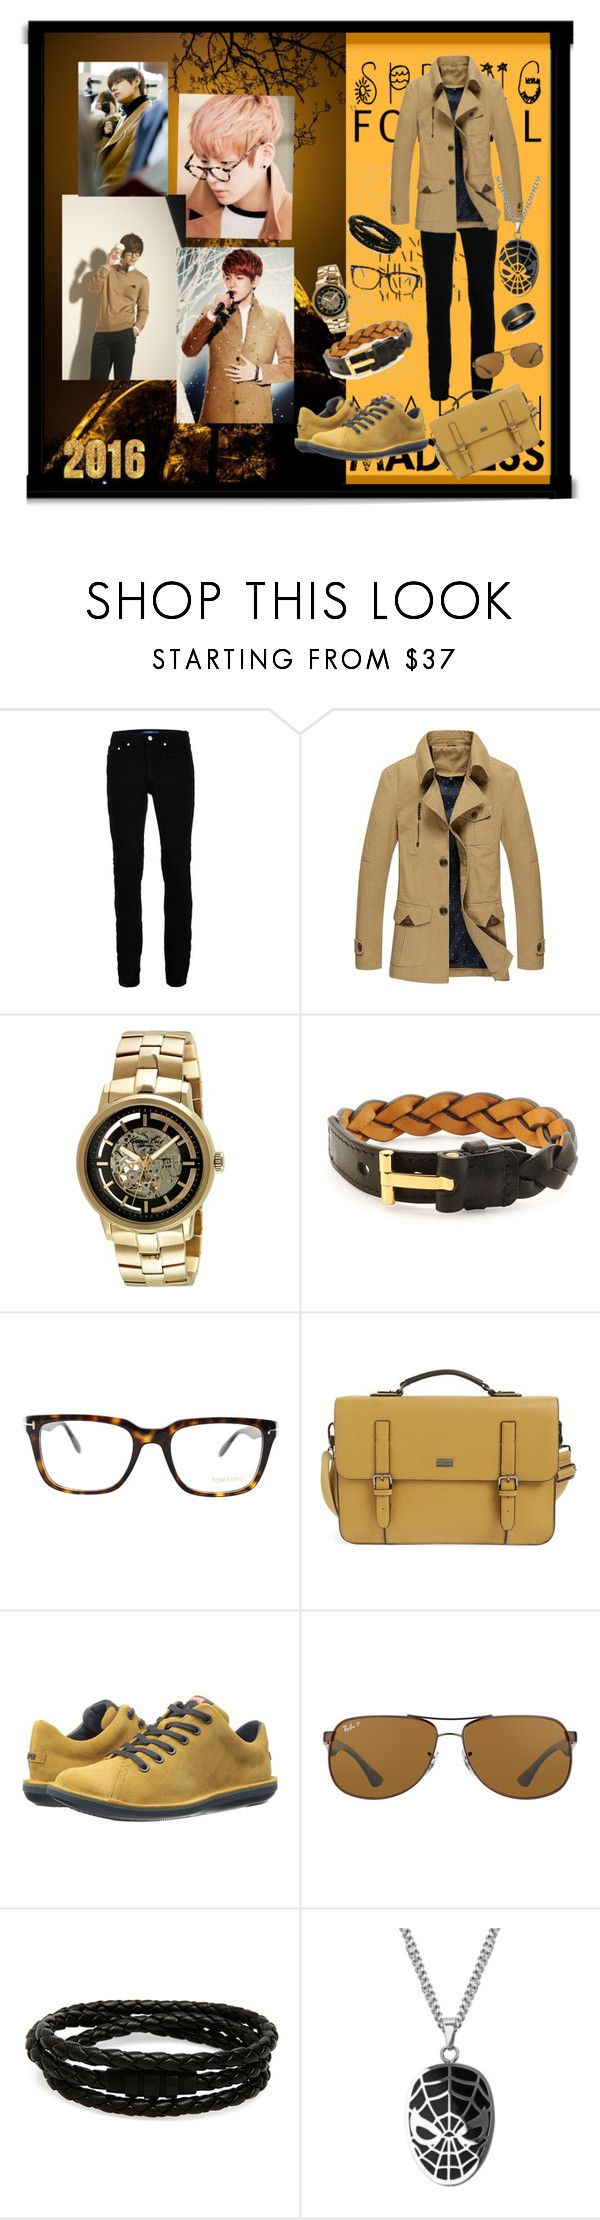 """""""Autumn camouflage"""" by farrukh-rabia ❤ liked on Polyvore featuring Topman, Kenneth Cole, Tom Ford, Ted Baker, Camper, Ray-Ban, Porsche Design, Blue Nile, men's fashion and menswear"""